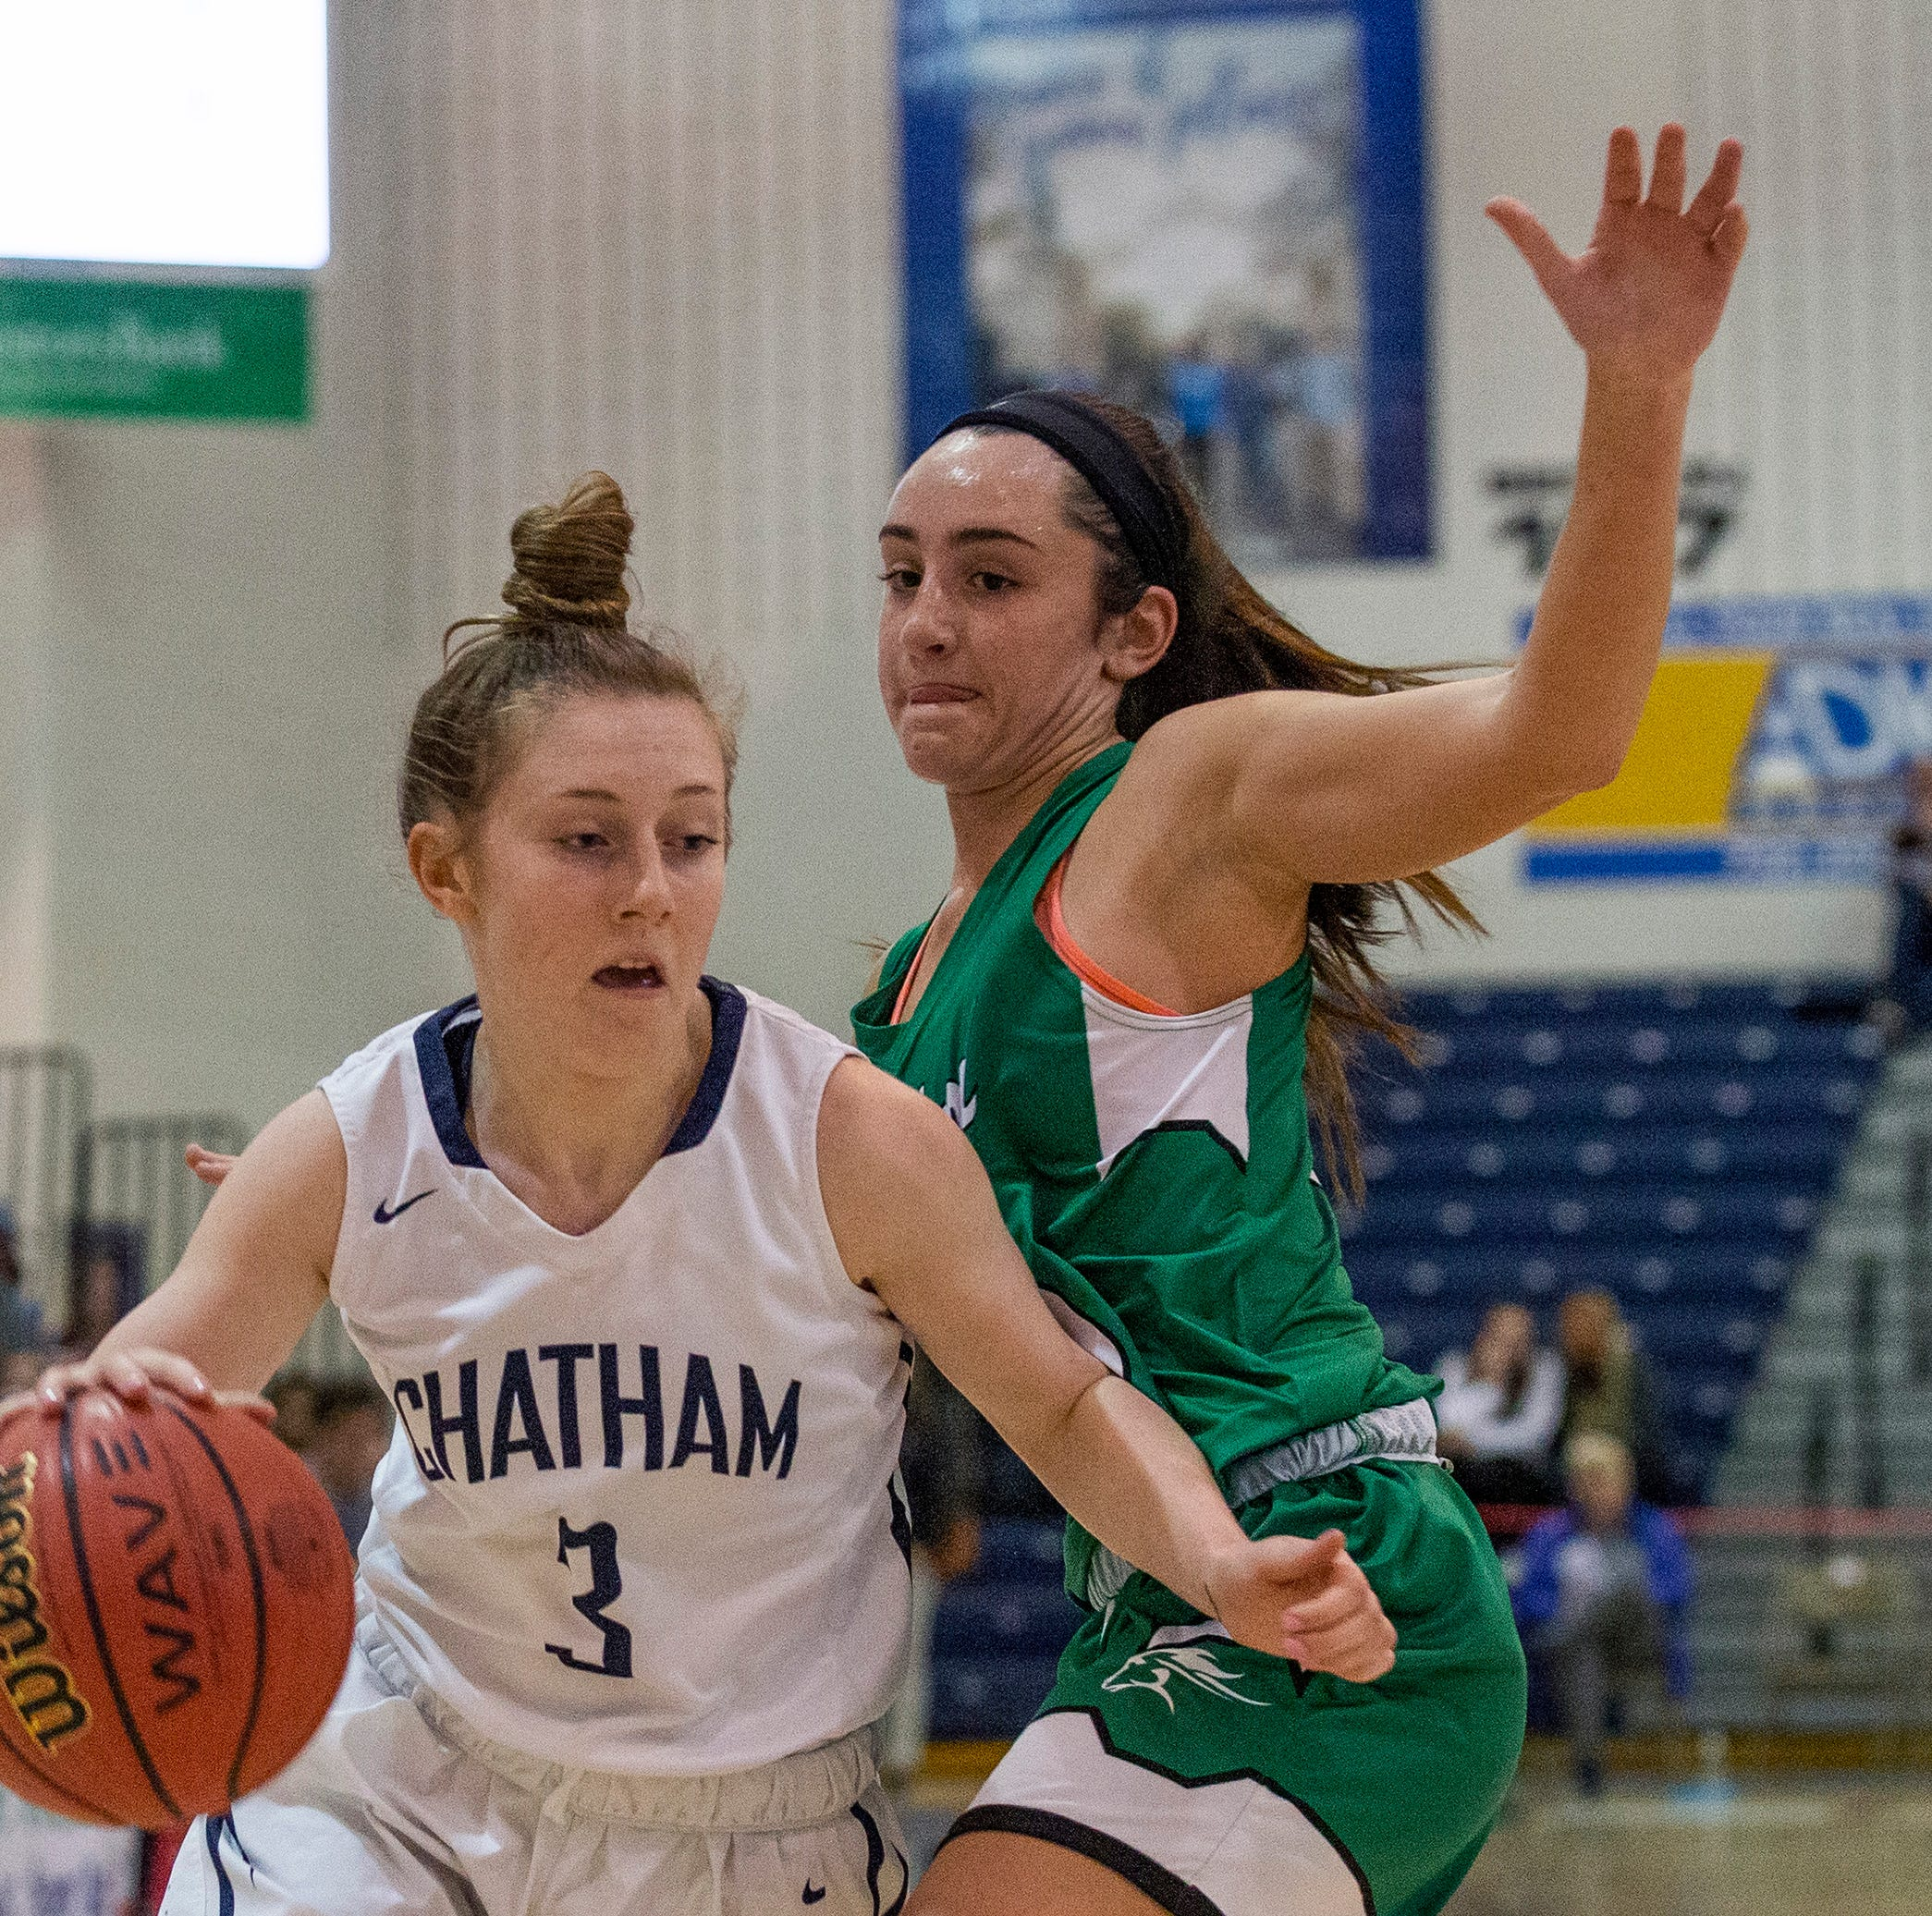 Chatham girls basketball falls to Mainland in Group III final